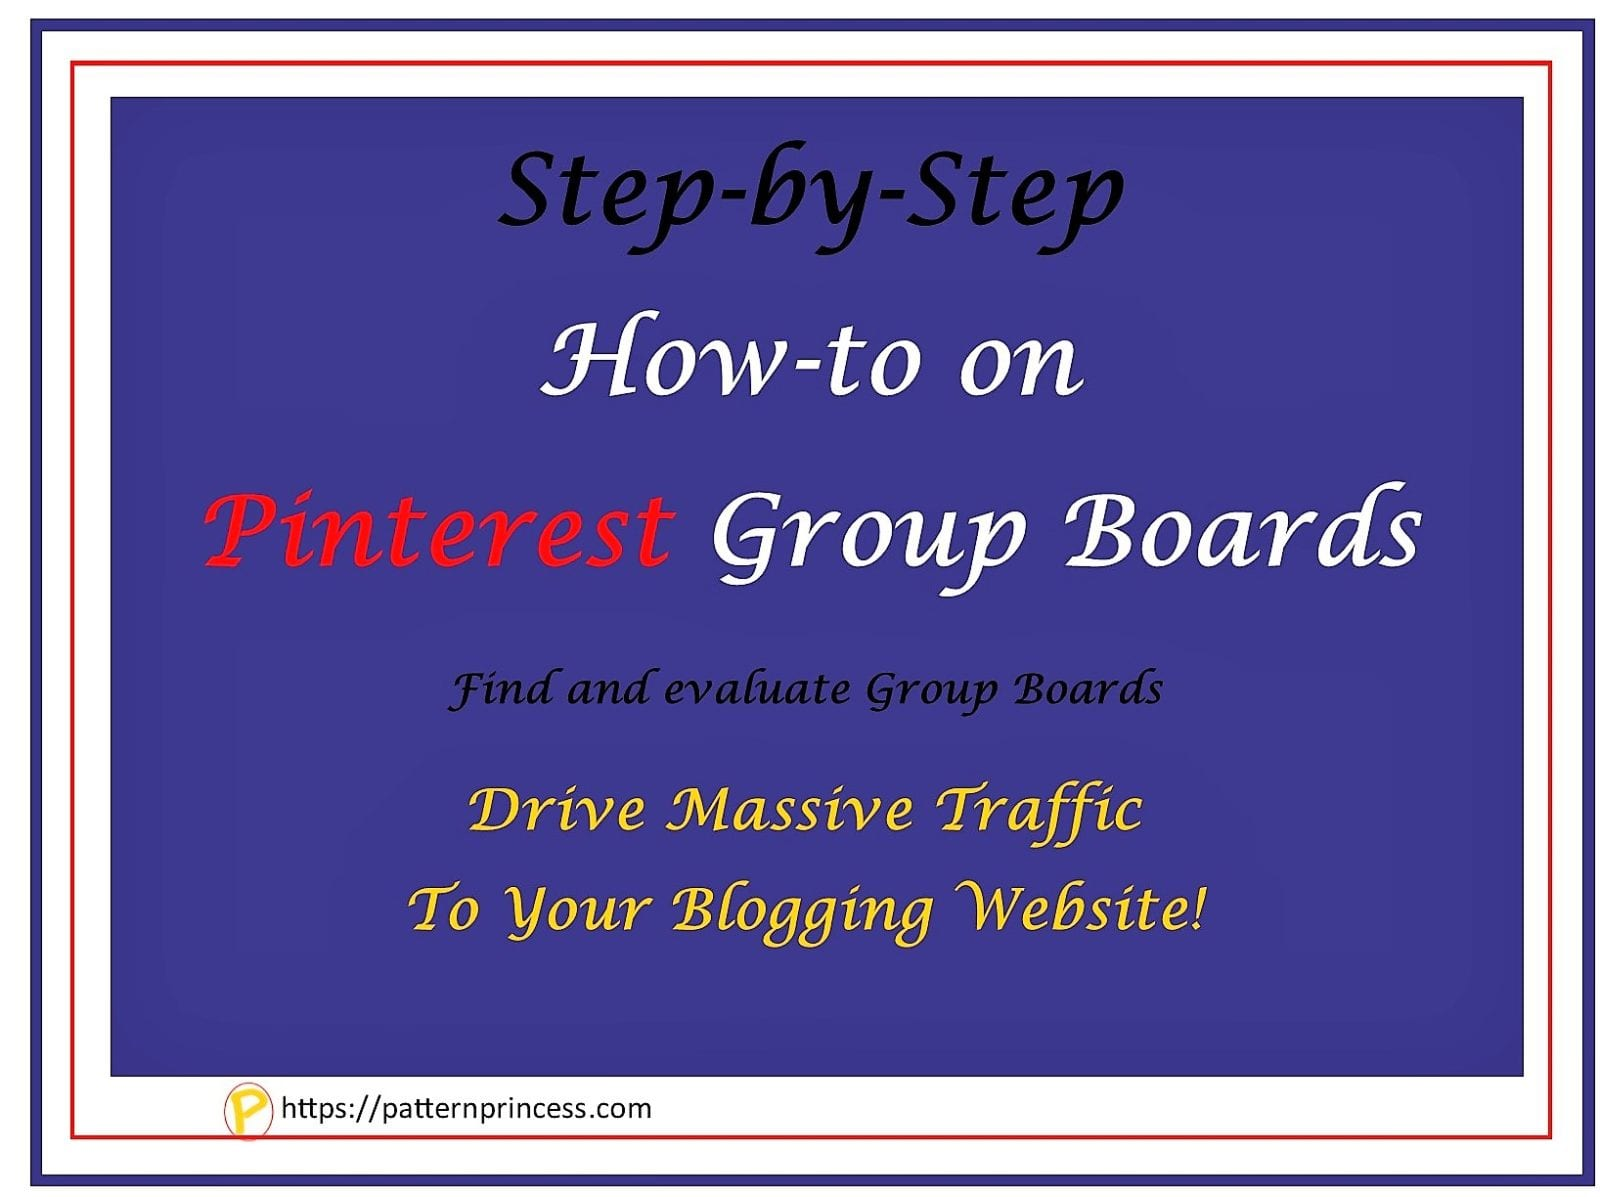 Step by step Pinterest Group Boards